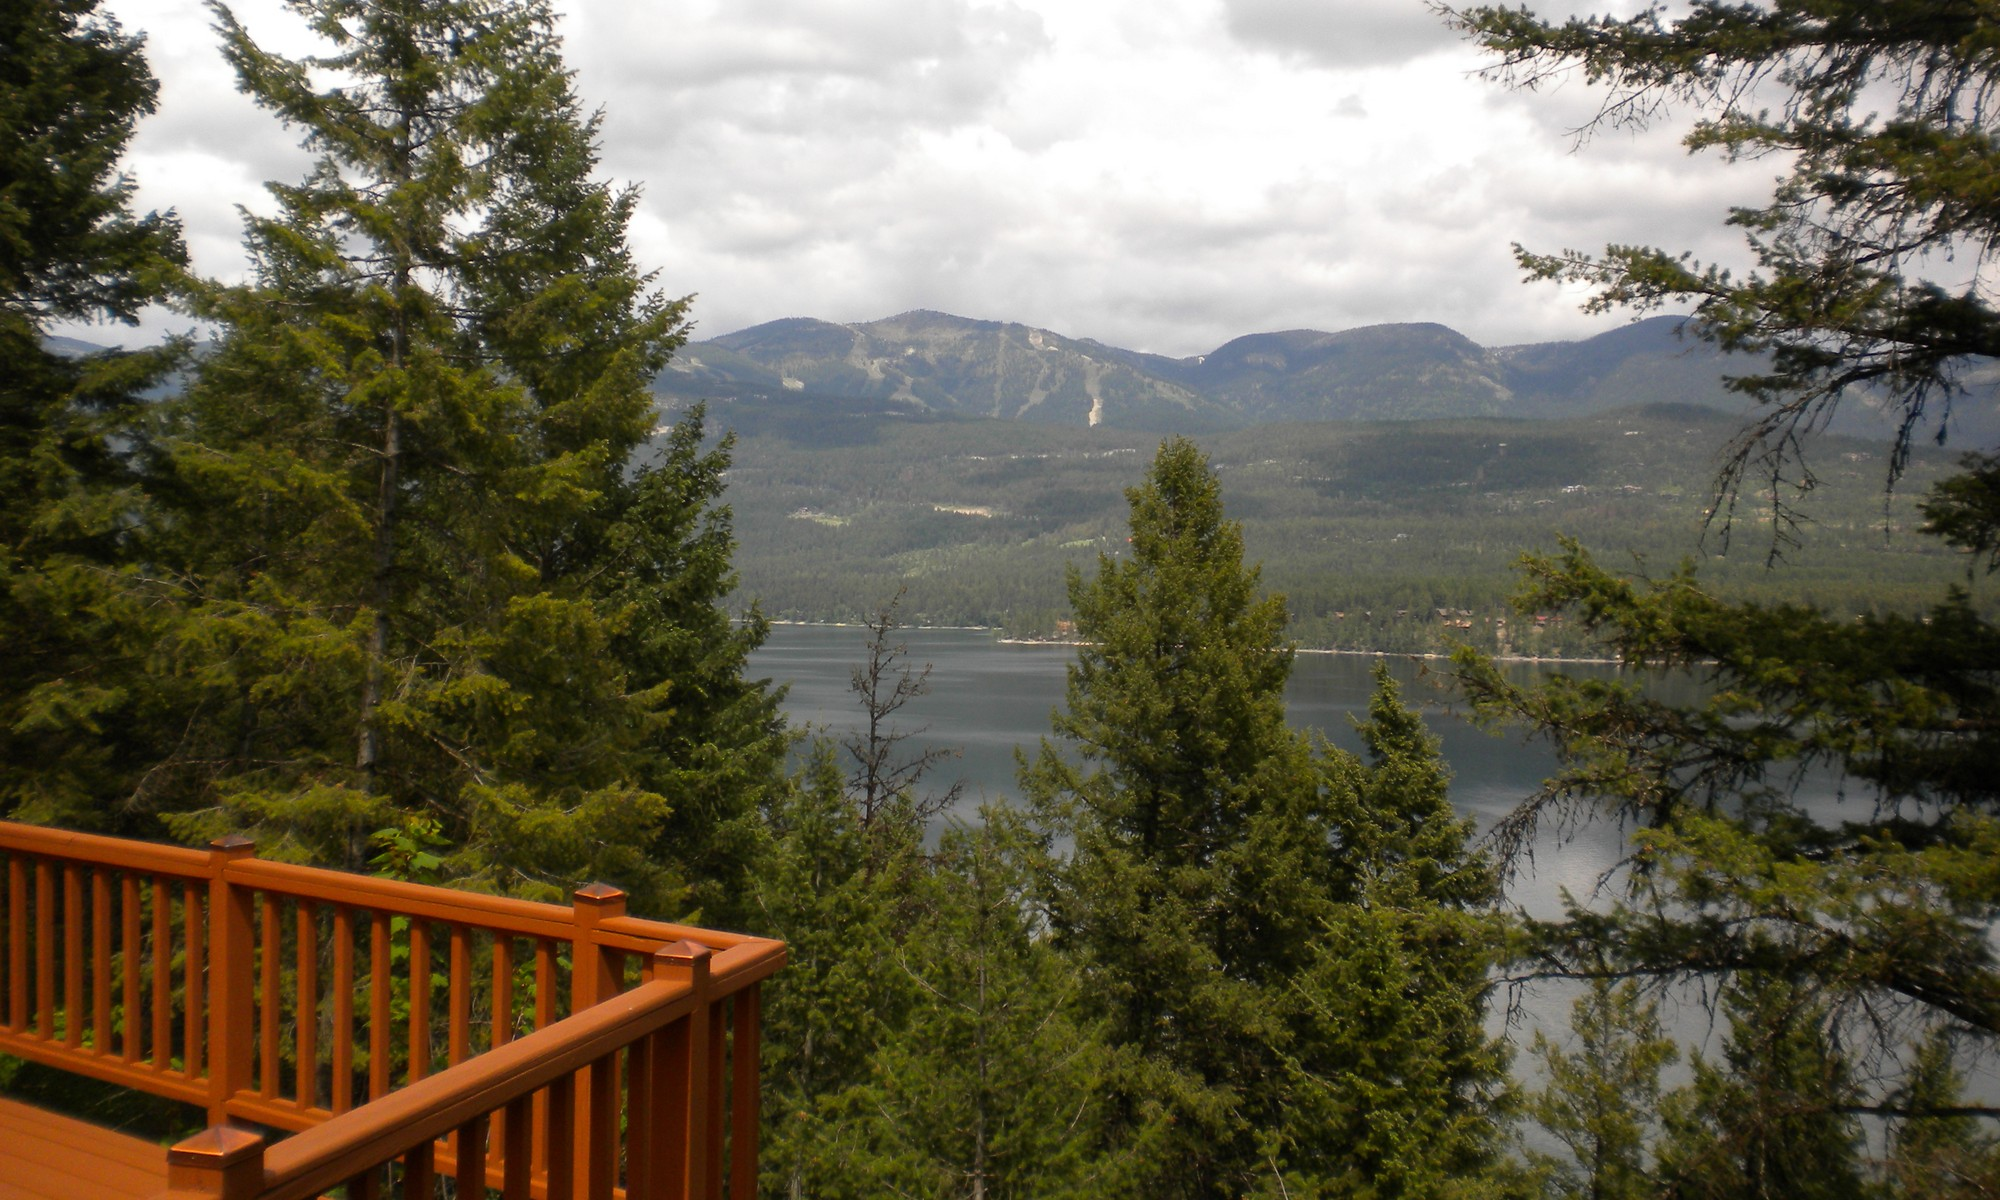 Casa Unifamiliar por un Venta en Lion Mountain Drive 1365 Lion Mountain Drive Whitefish, Montana 59937 Estados Unidos